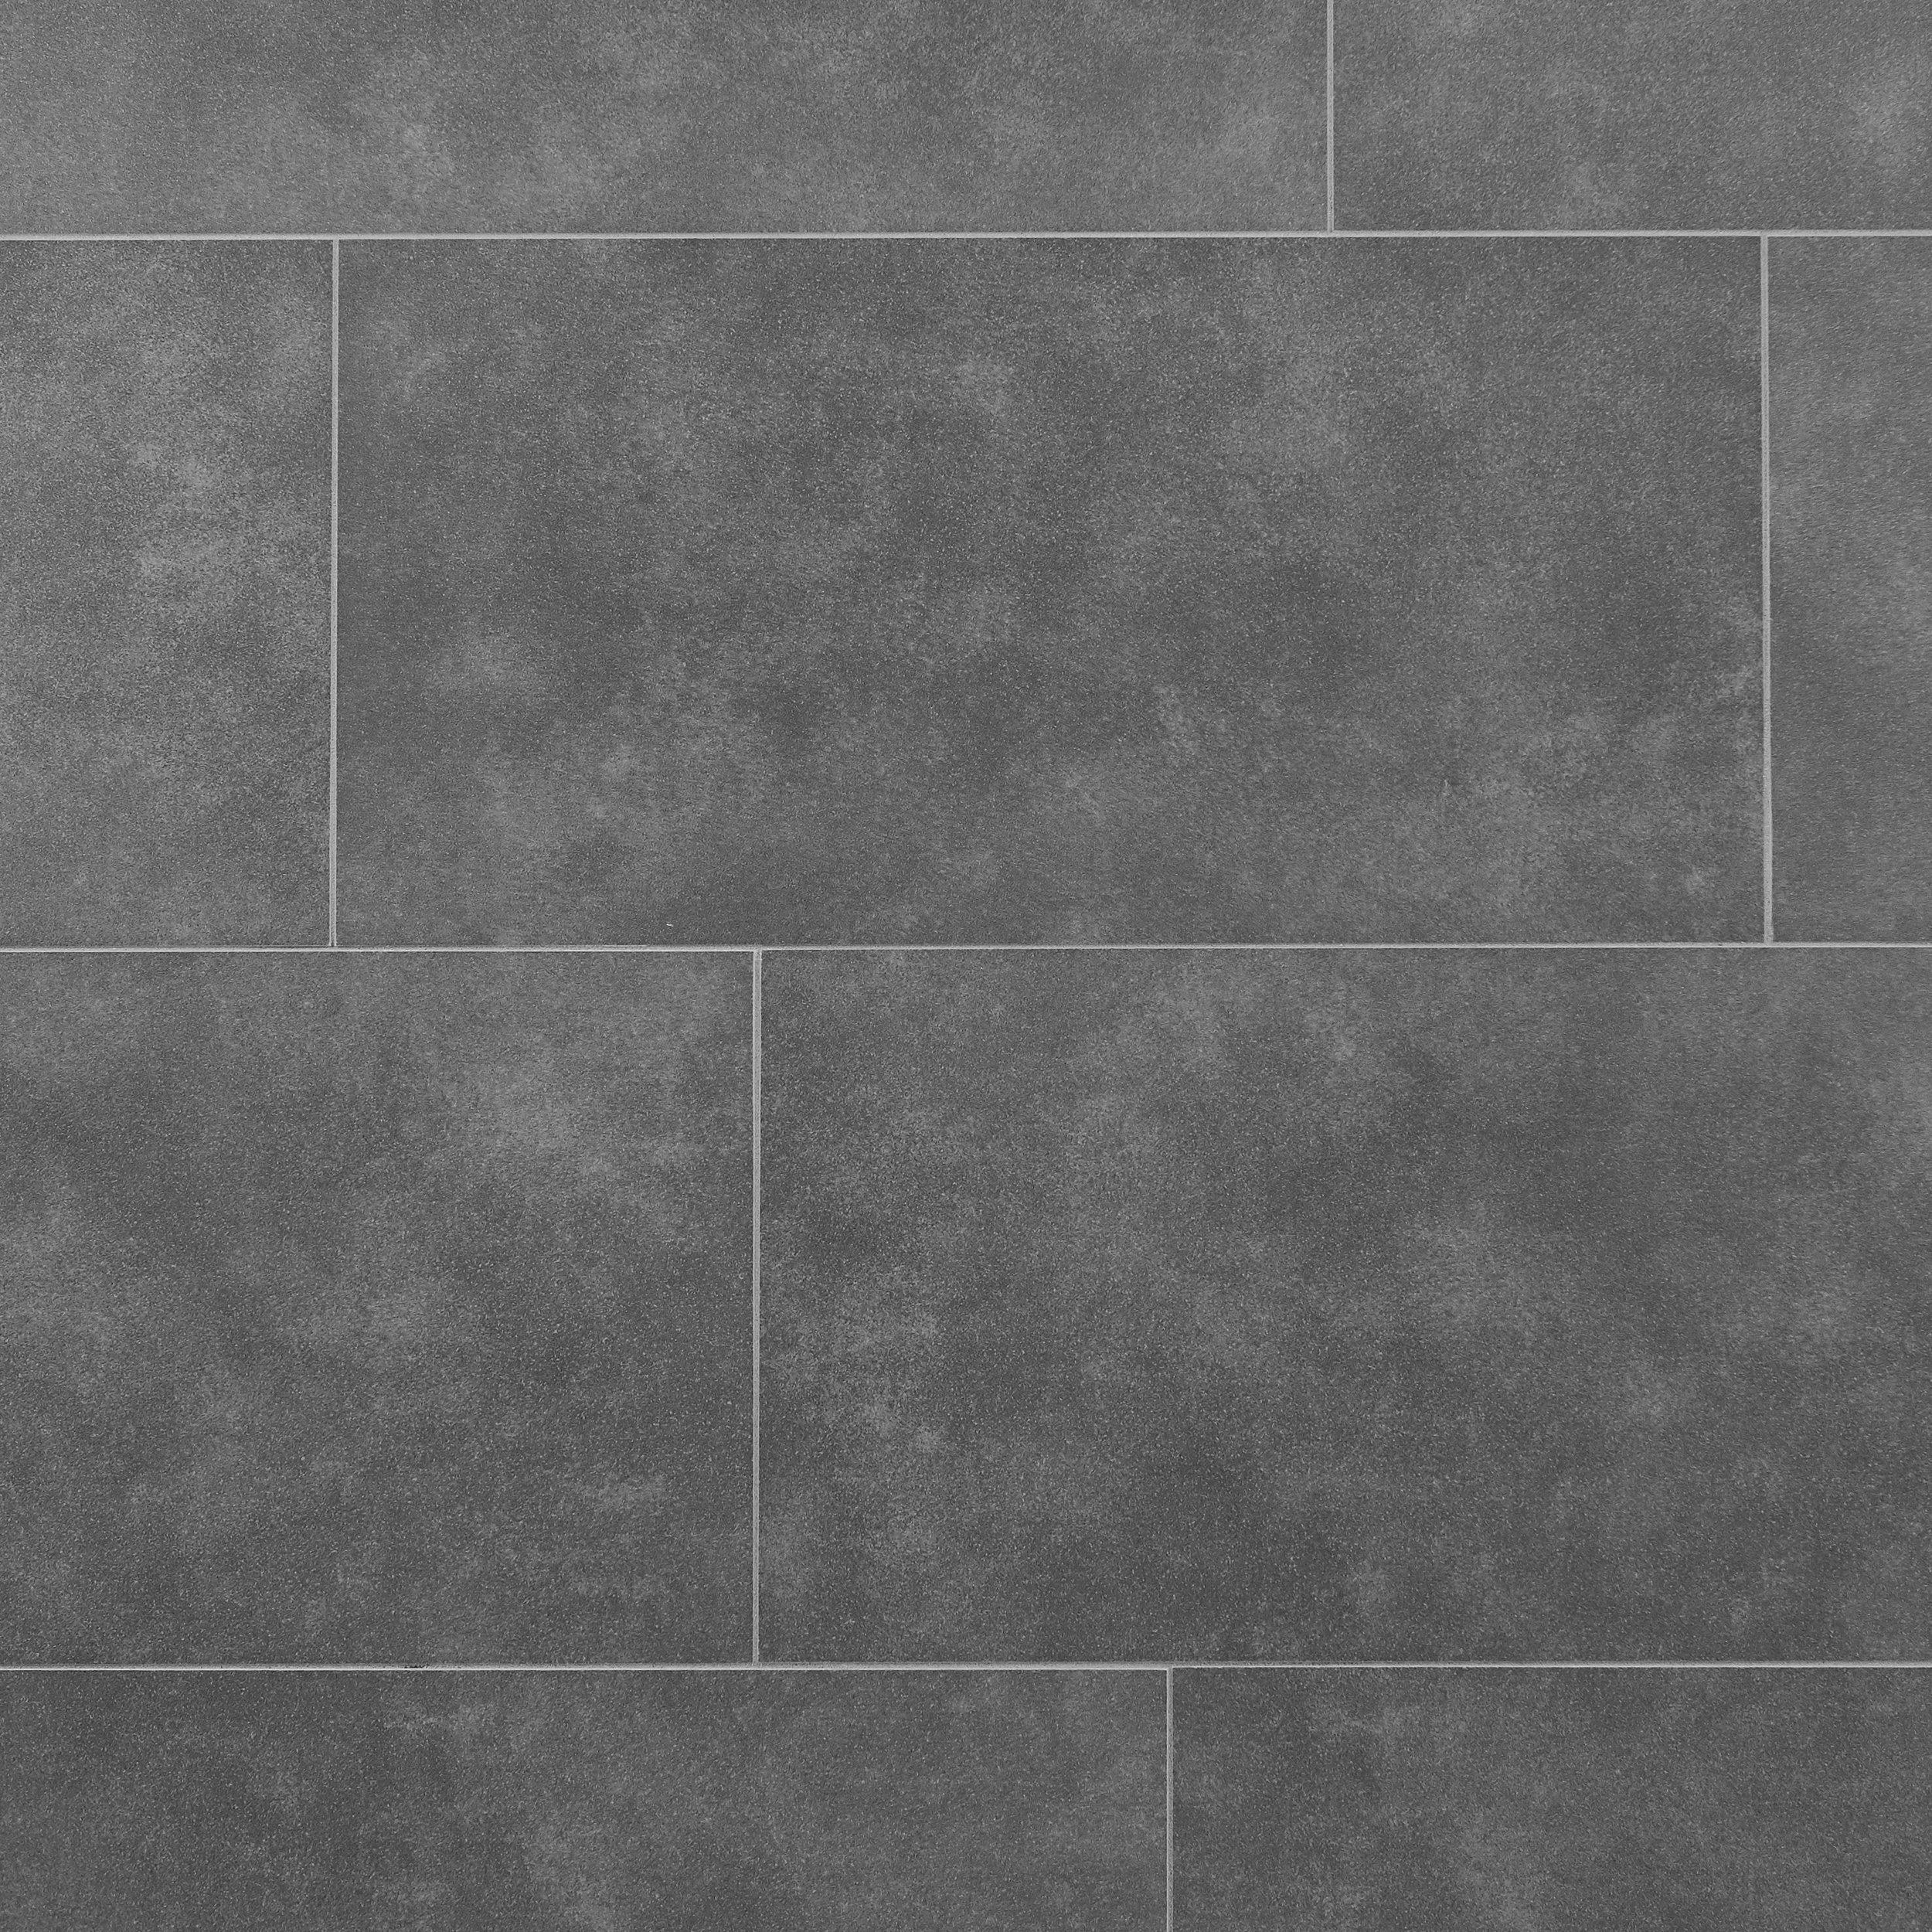 Porcelain Floor Tiles Concrete Gray Ceramic Tile 12 X 24 100136795 Floor